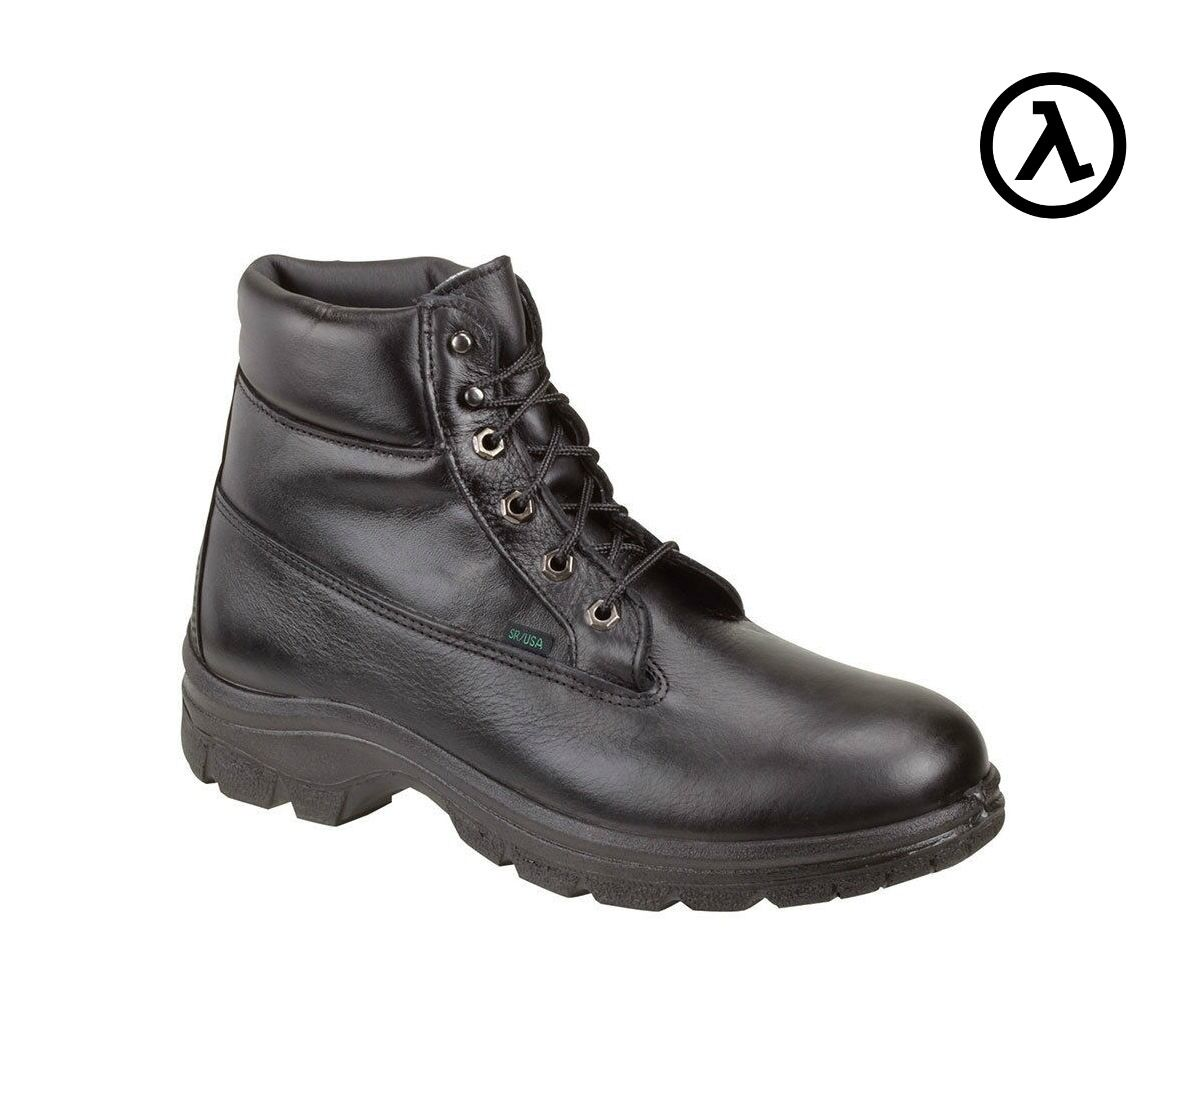 THOROGOOD UNIFORM SOFTSTREETS POSTAL WTRPF INSULATED BOOTS 834-6342 - ALL SIZES